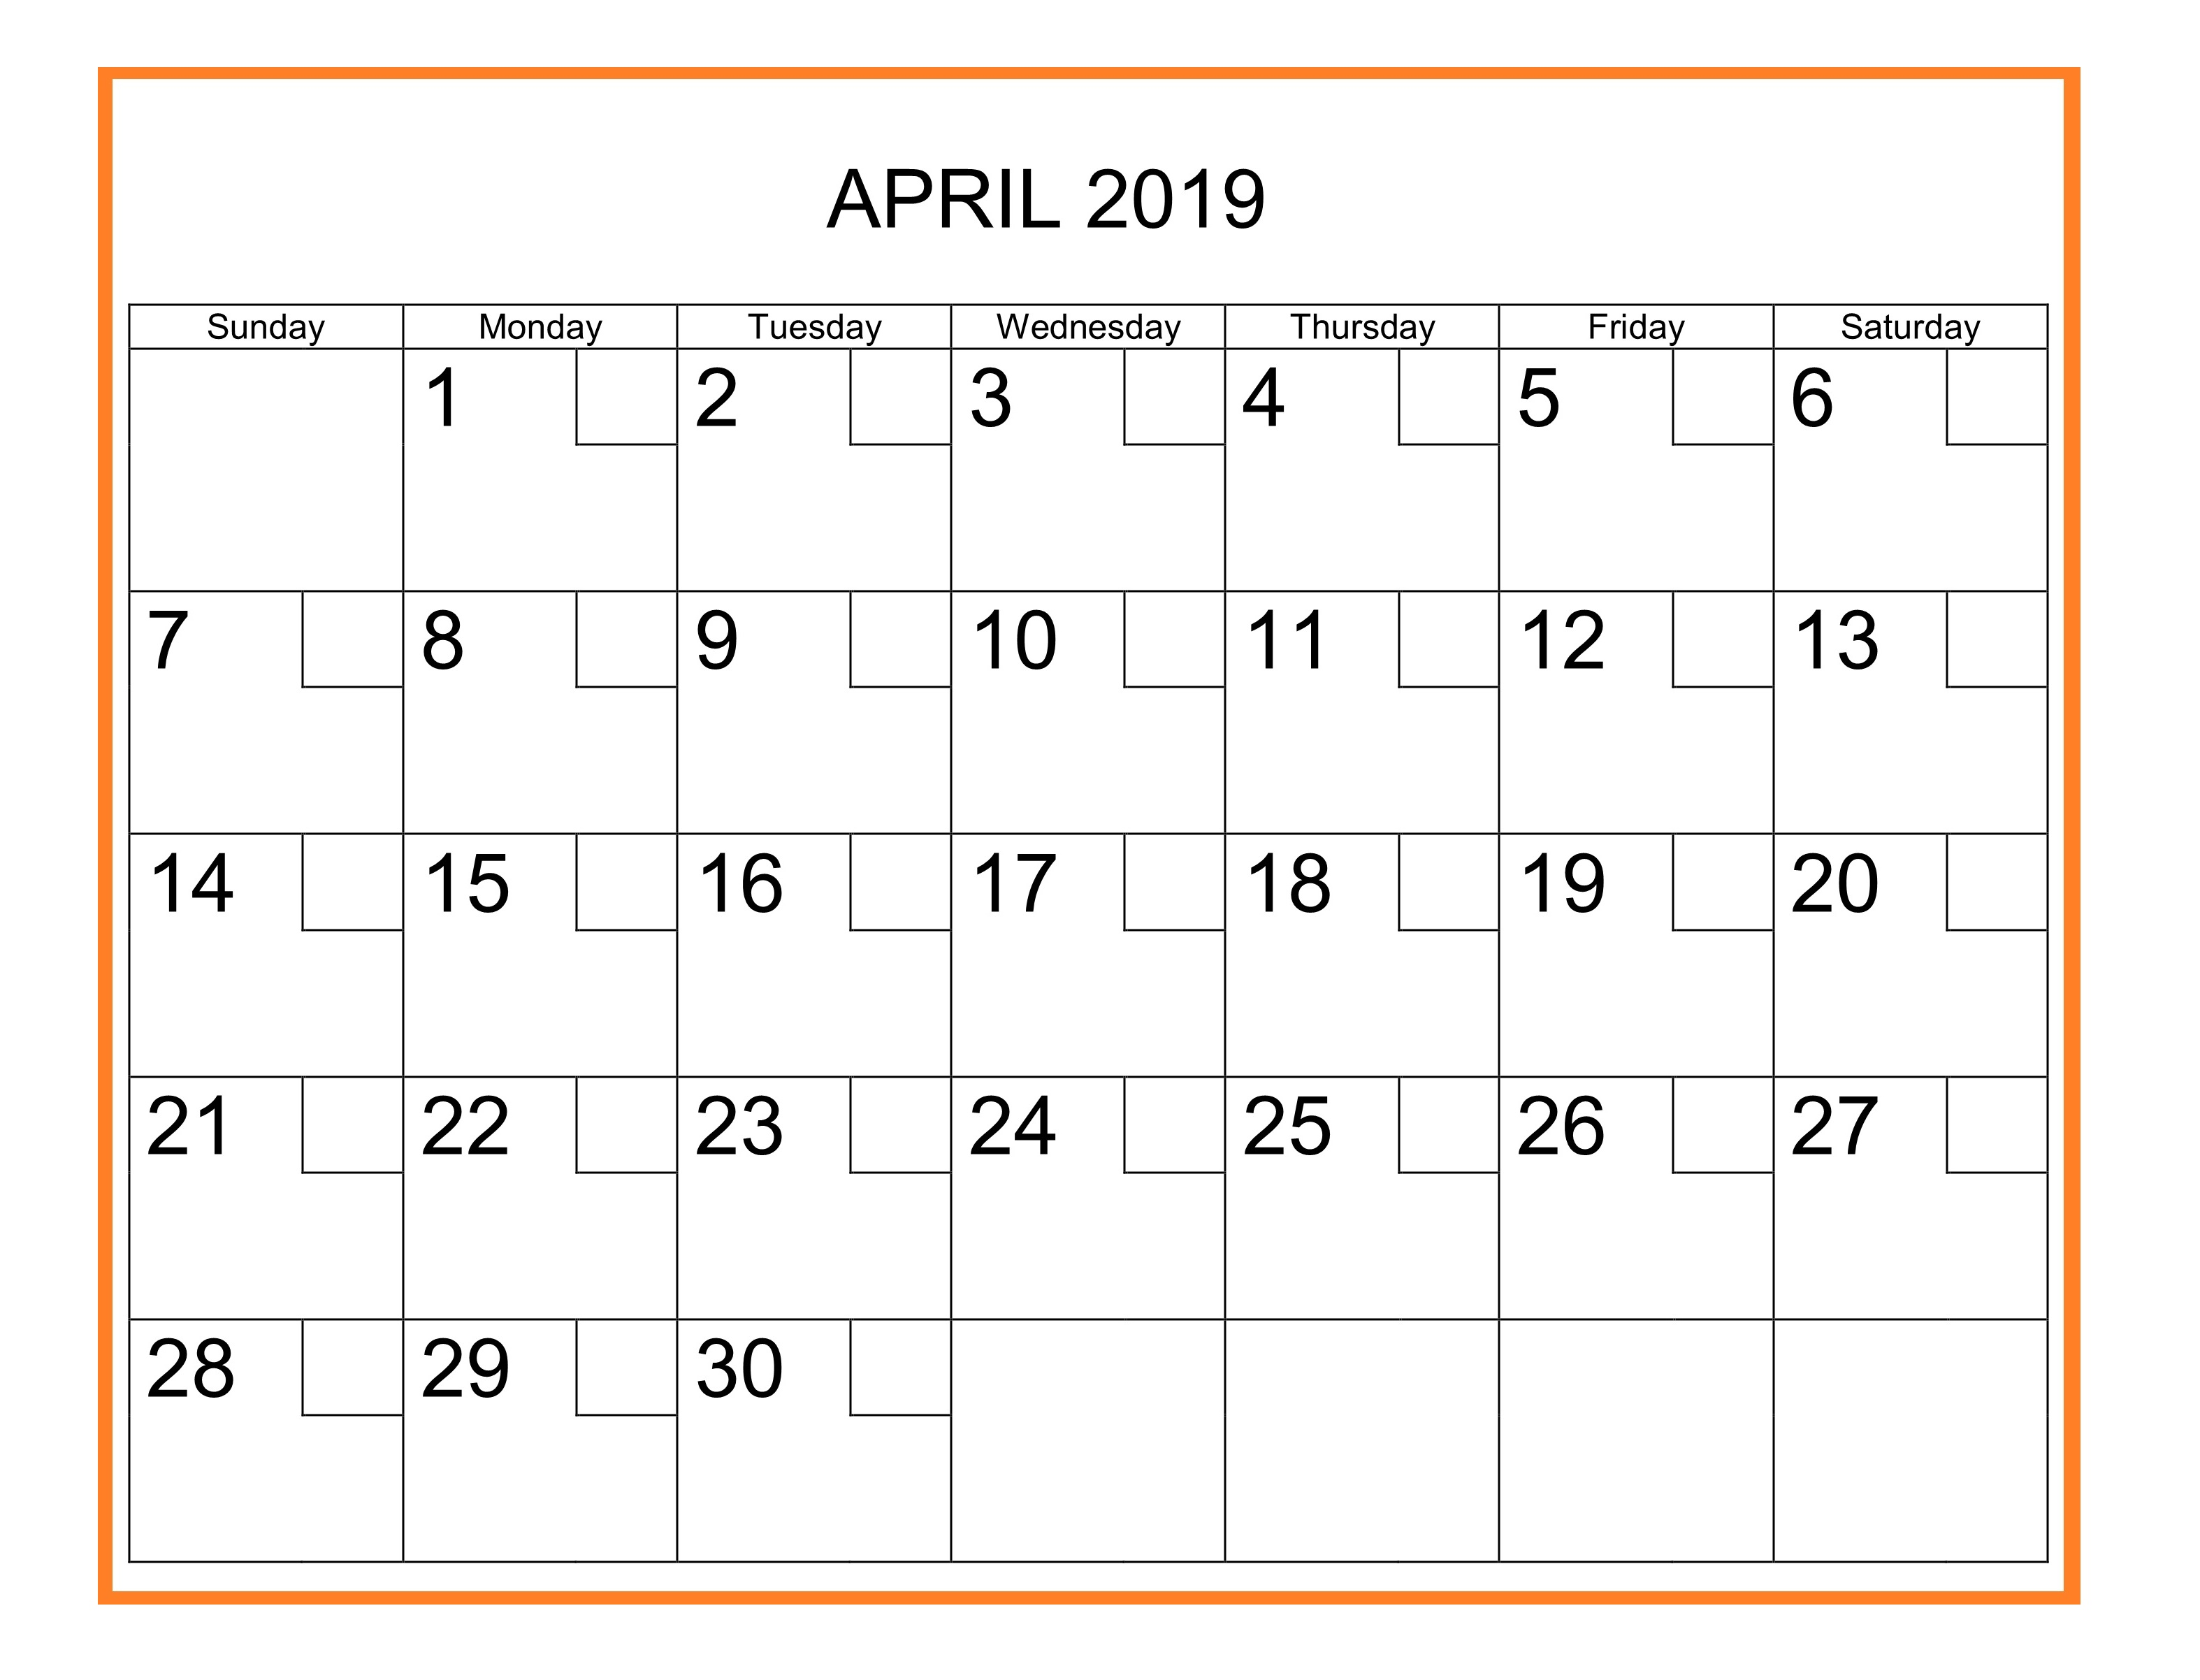 April 2019 Holidays Calendar